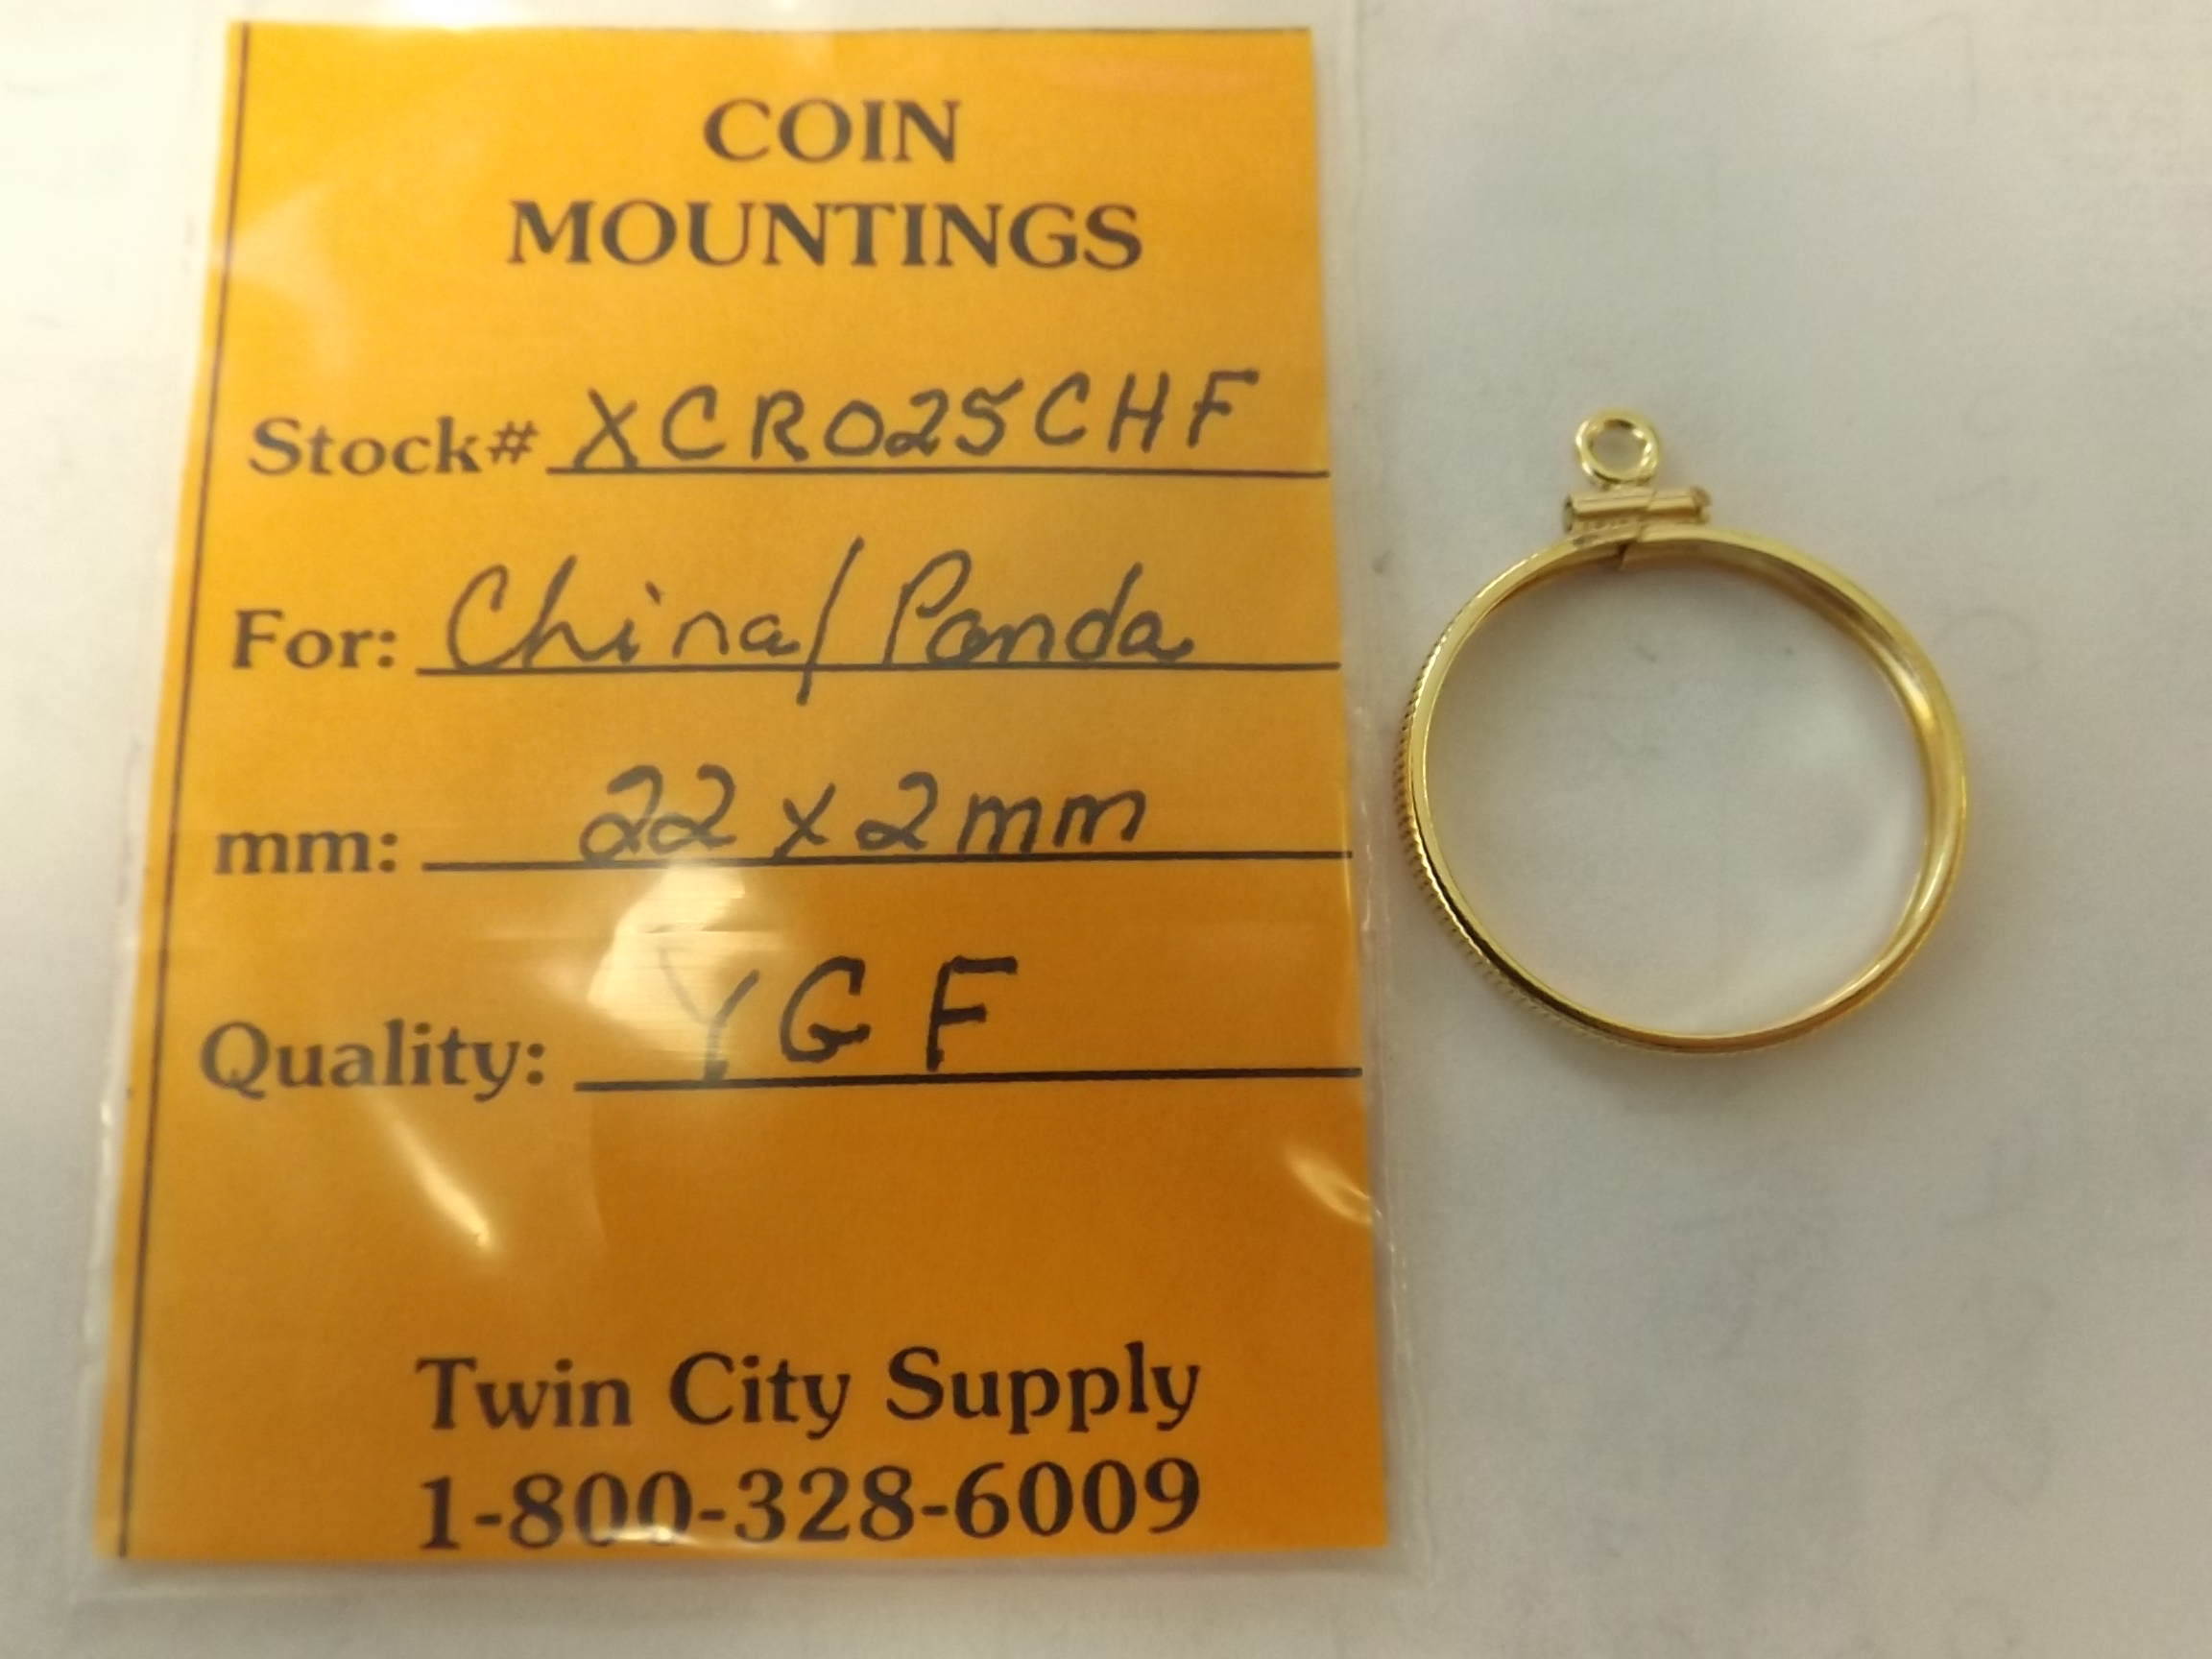 CR025CHF Chinese Coin Mounting-- 1/4 Ounce Panda-Yellow Gold Filled Closeout!